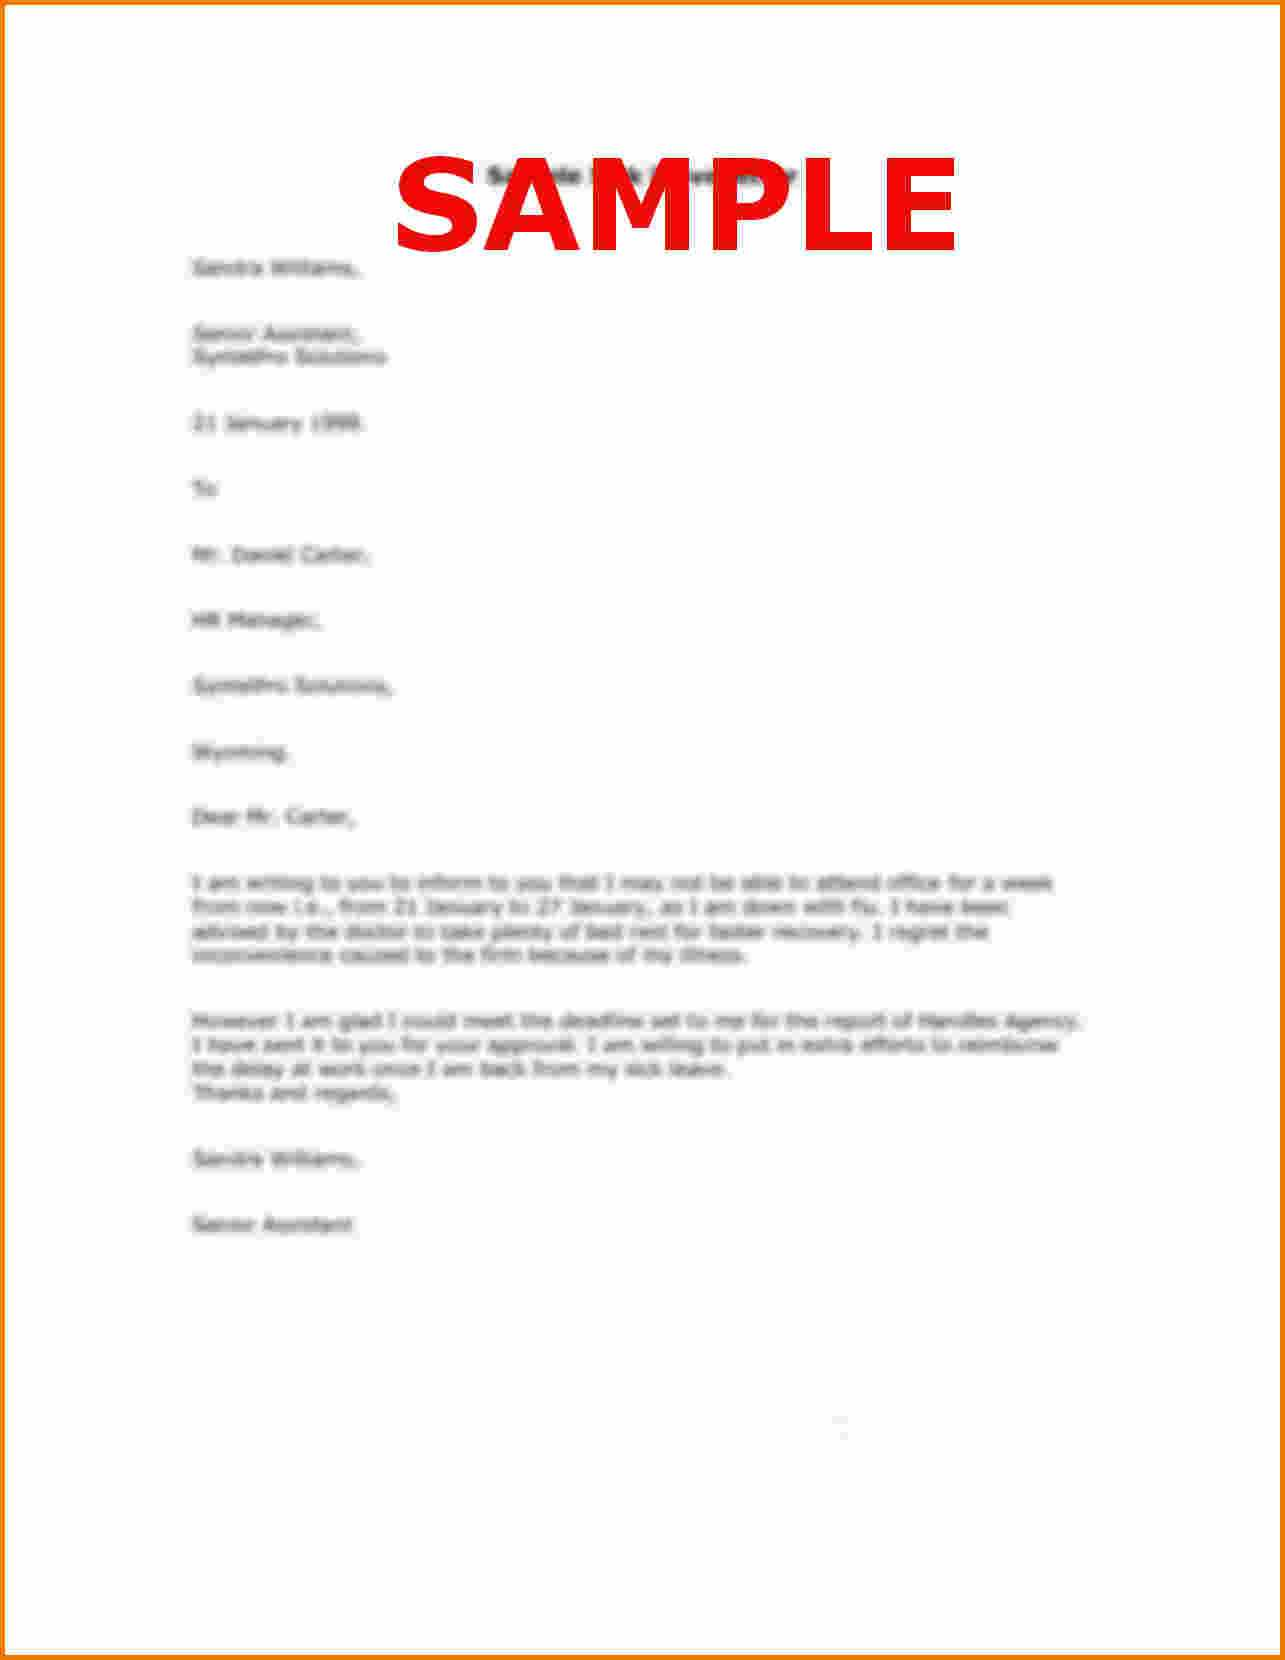 Expense Report Policy Sample and Resignation Letter Sample for Personal Reasons